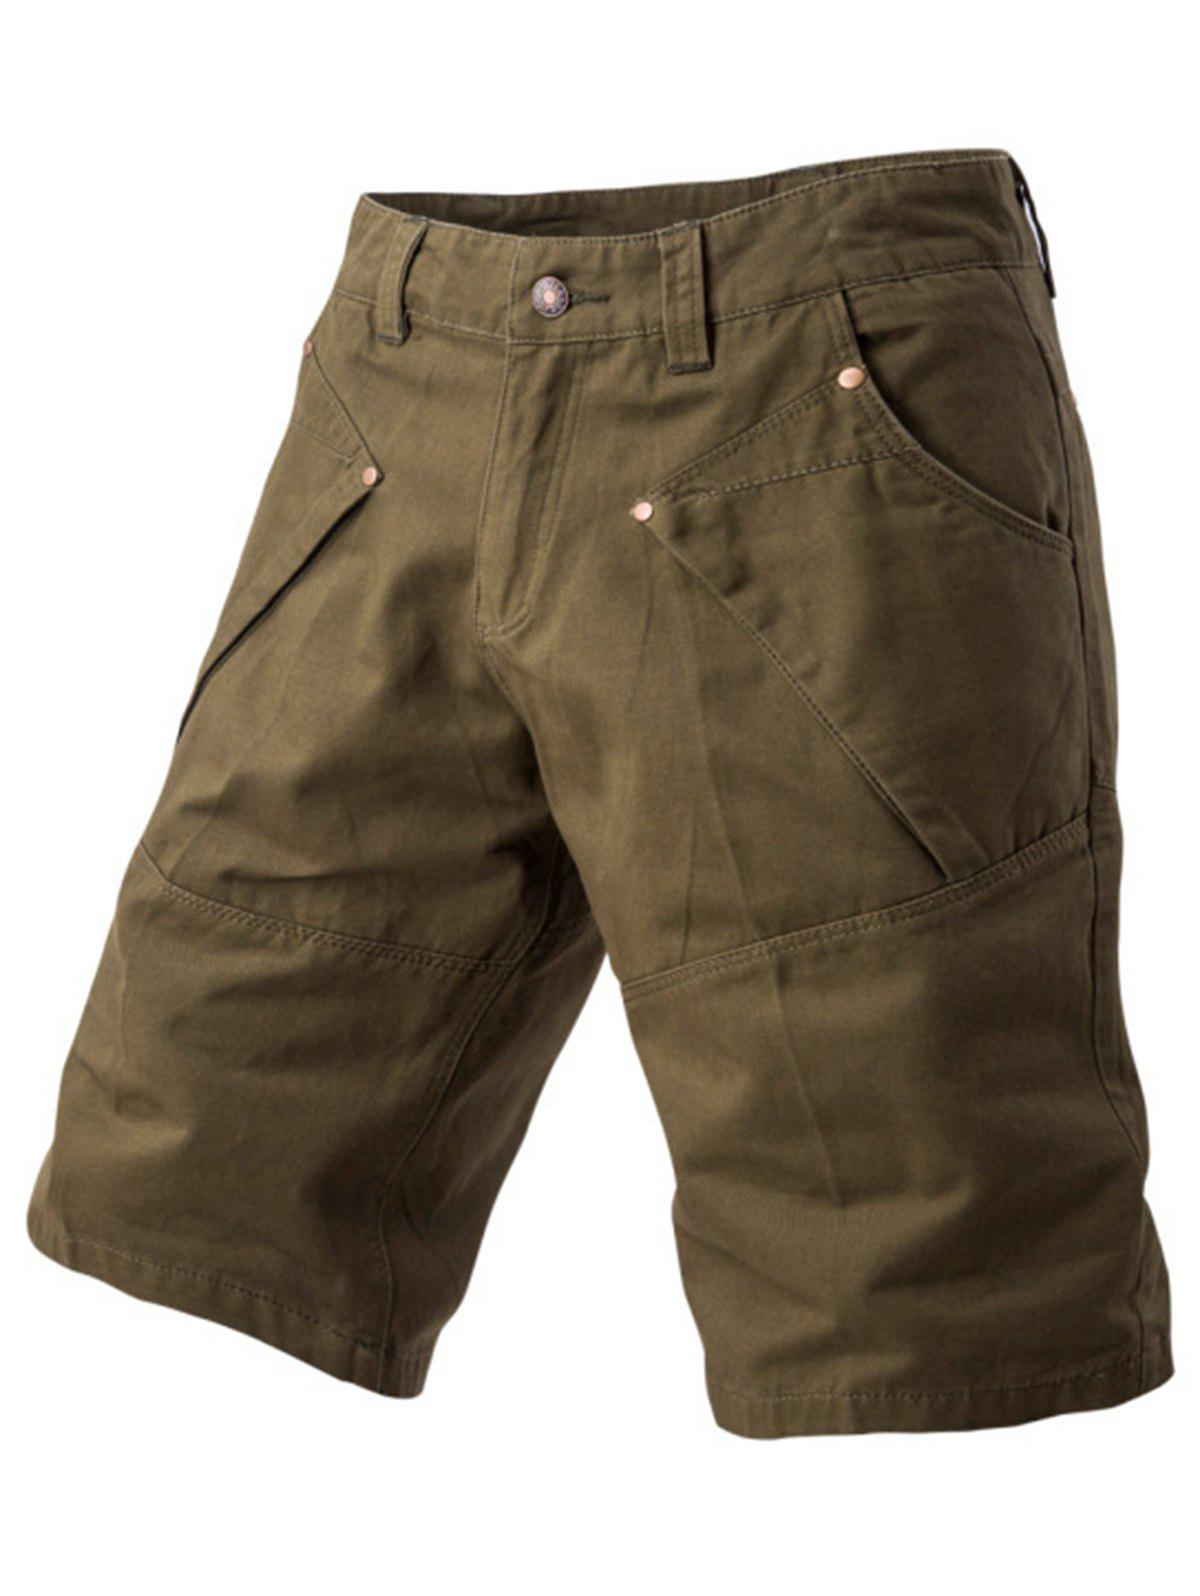 Panel Design Pockets Cargo Shorts - ARMY GREEN 32